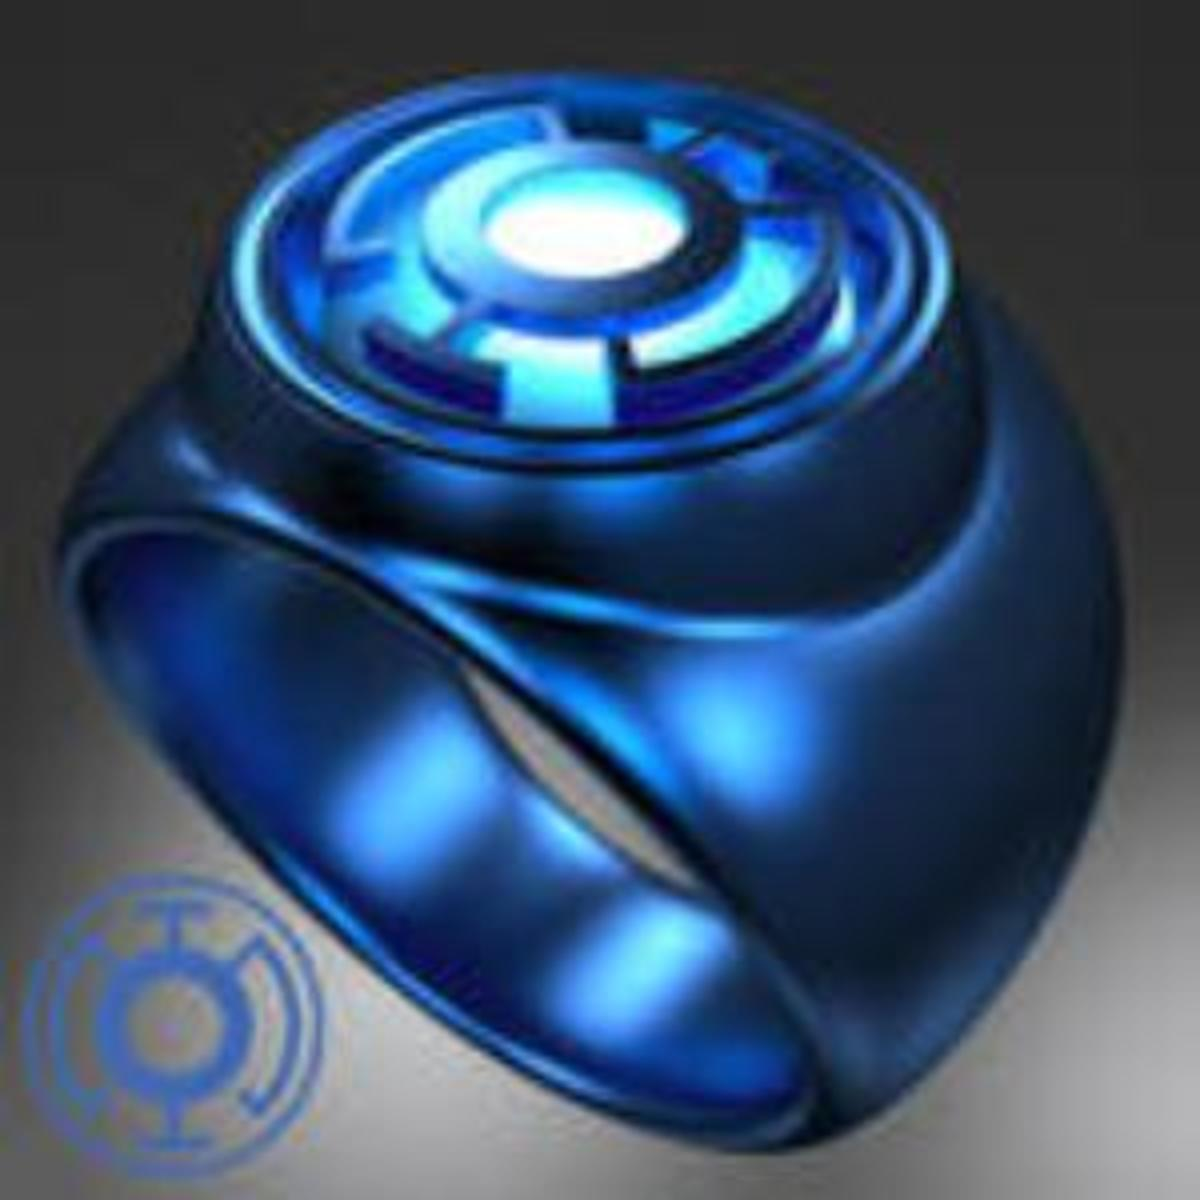 The Blue Lantern Corps Power Ring